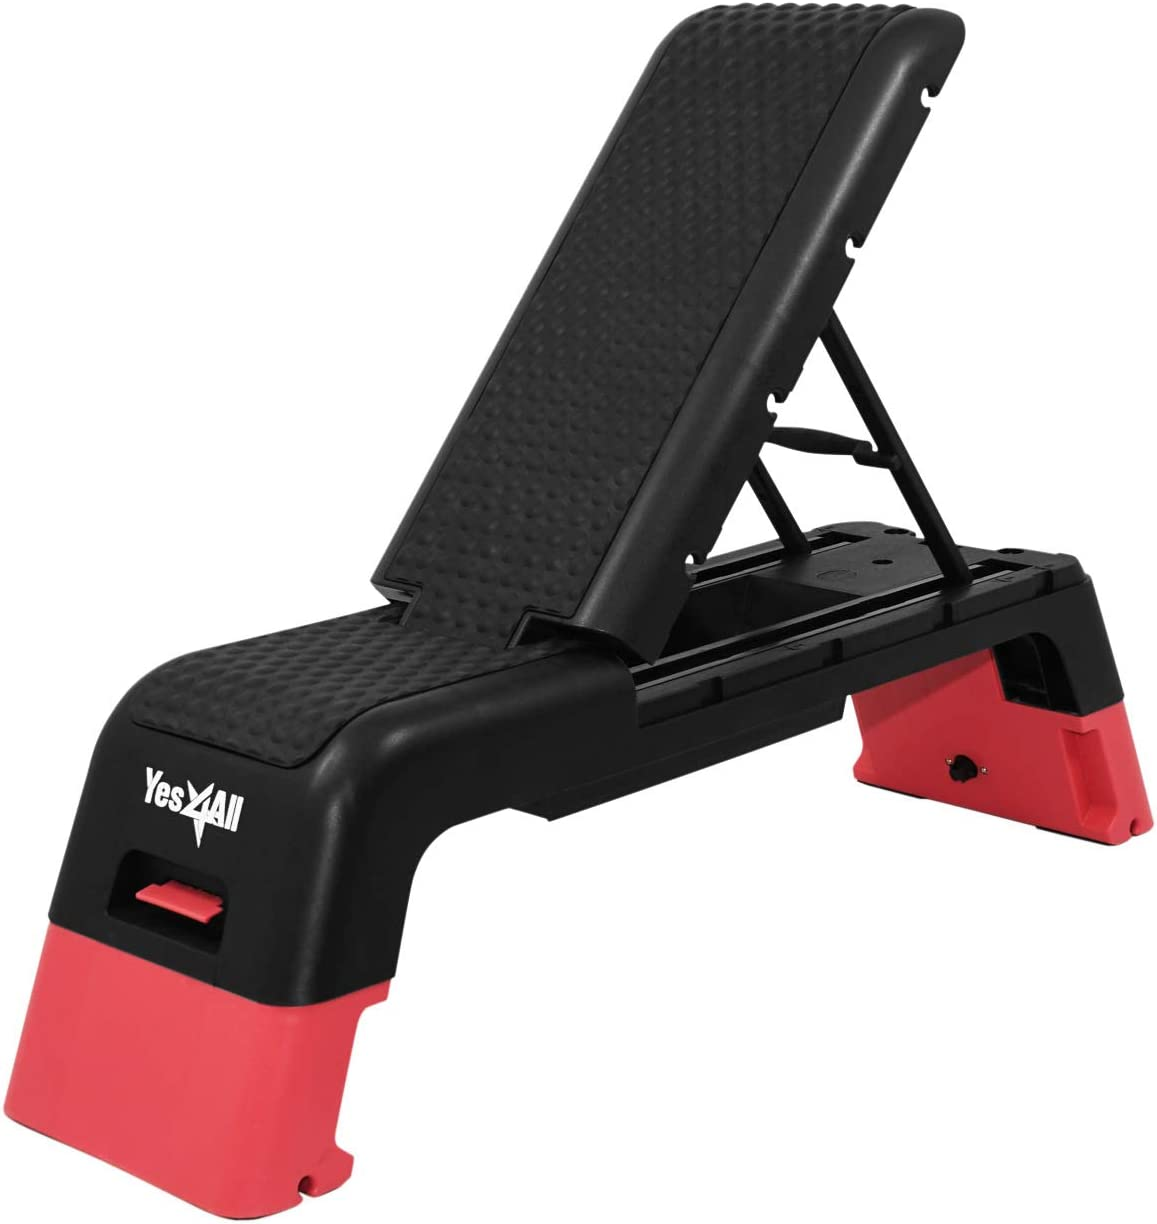 Amazon Com Yes4all Multifunctional Fitness Aerobic Step Platform Aerobic Deck Household Step Workout Bench For Home Gym Red Black Sports Outdoors